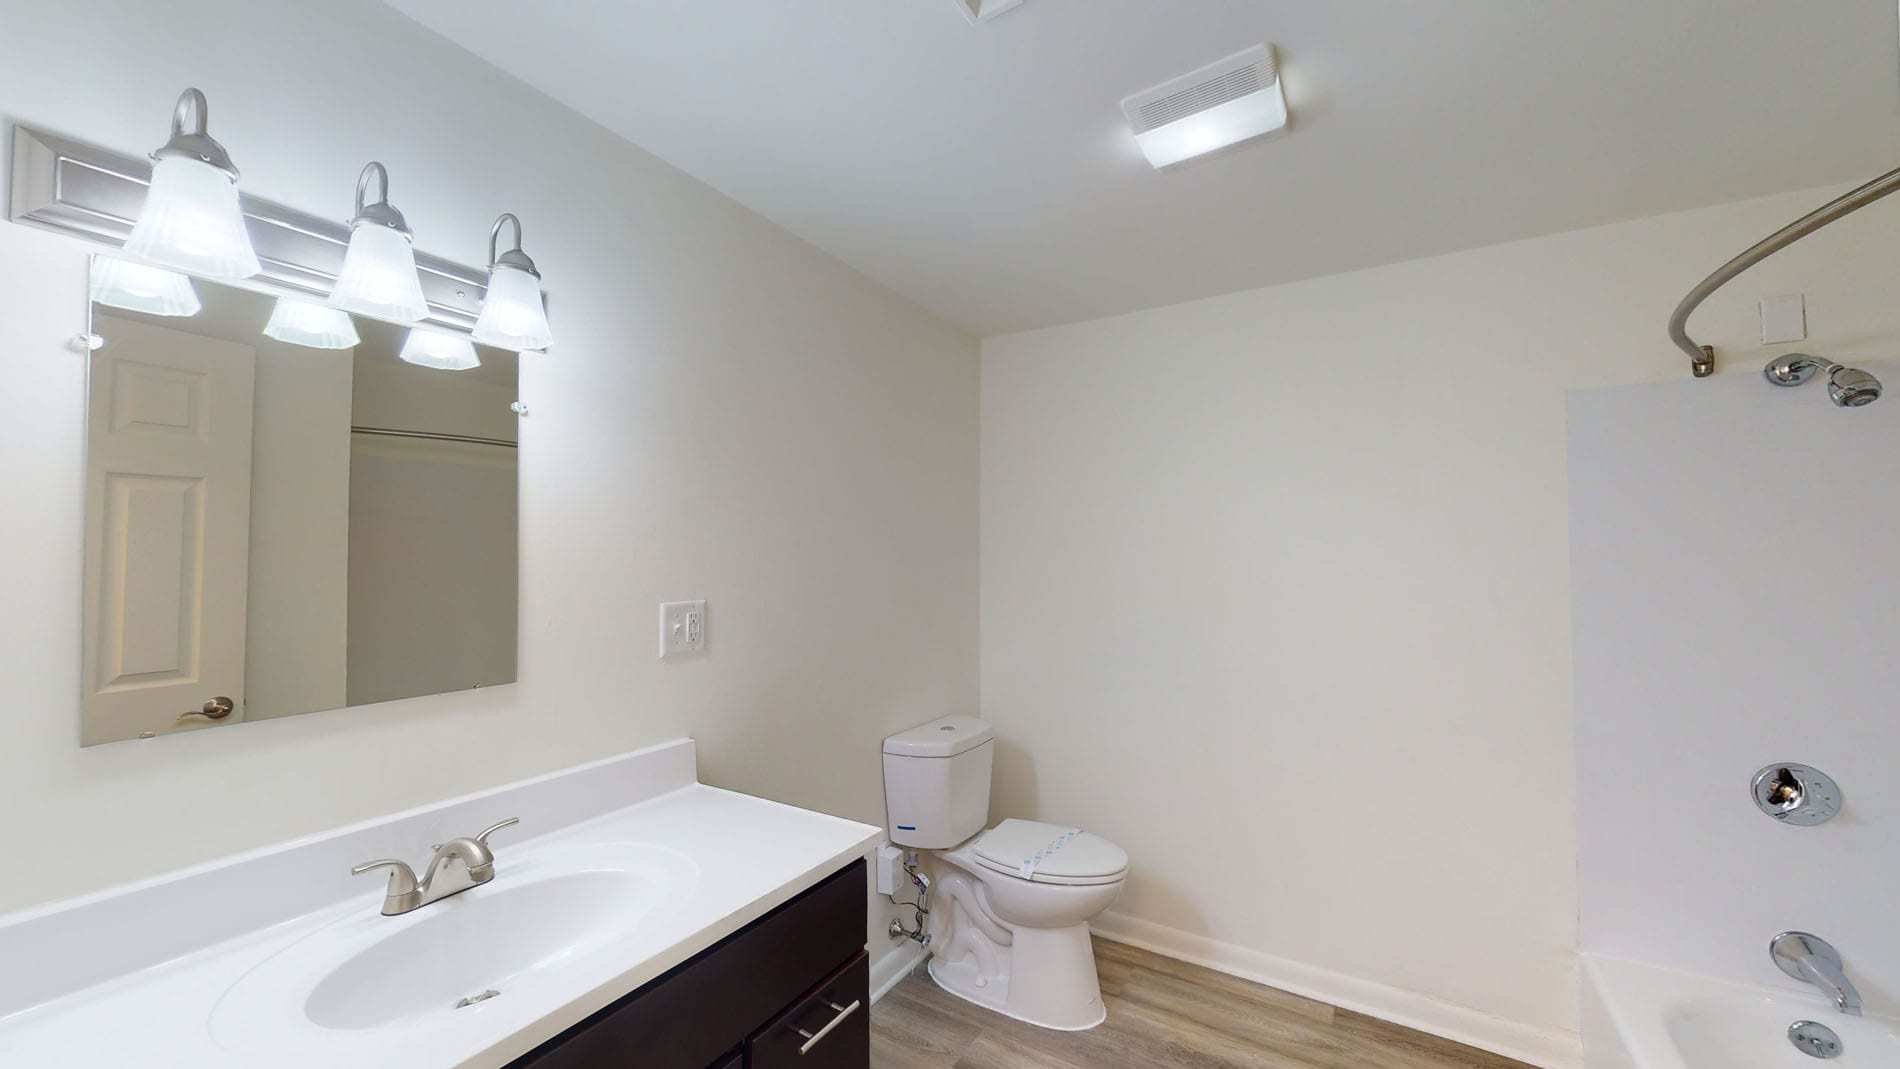 2 Beds, 1 Bath apartment in Norwood for $1,802